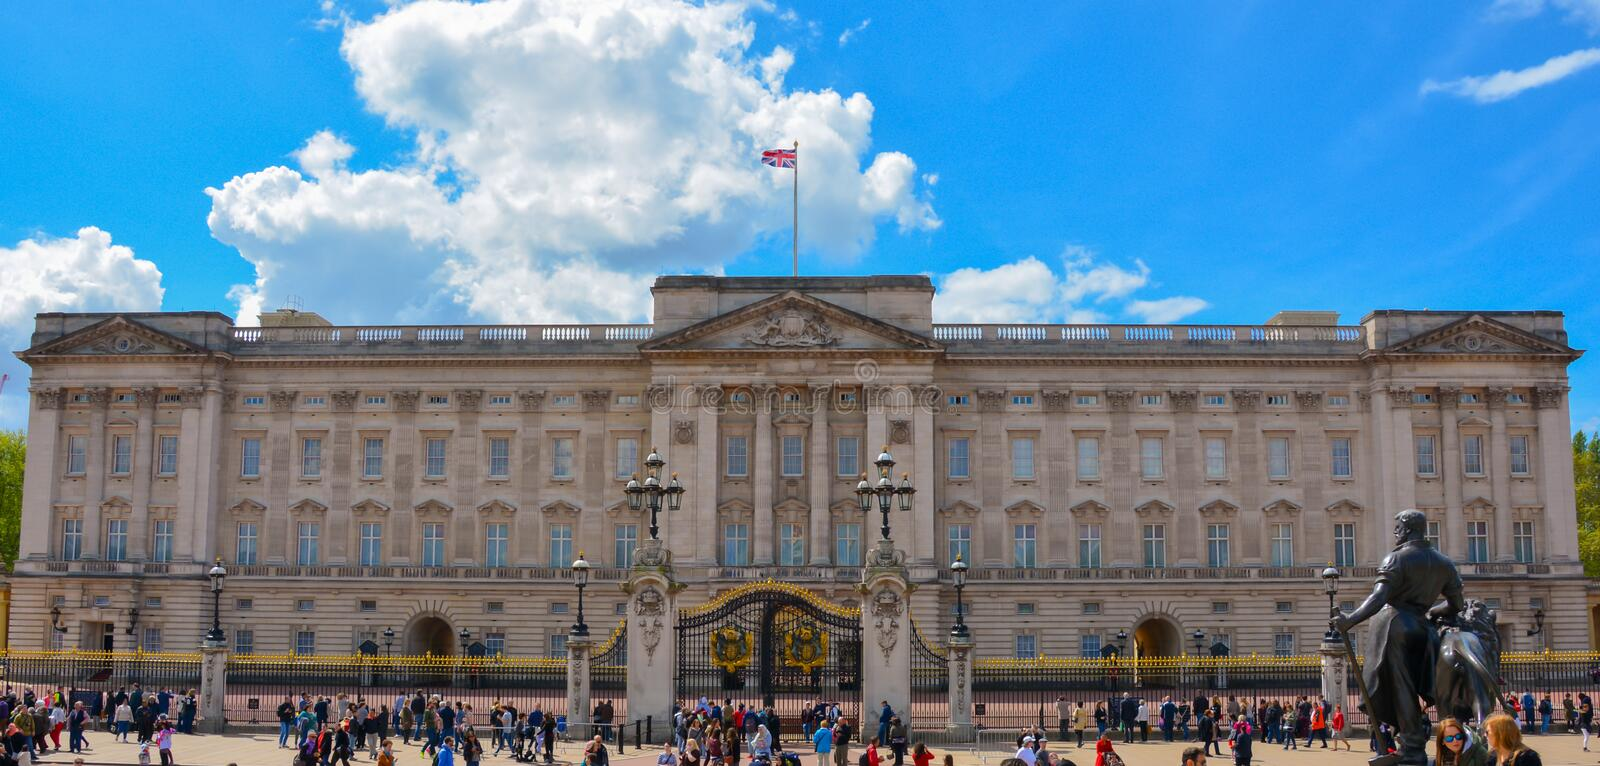 Buckingham palace - London. A shot of Buckingham palace when the royal family are present and the union jack flag is at full display. Taken May 2015 stock photos